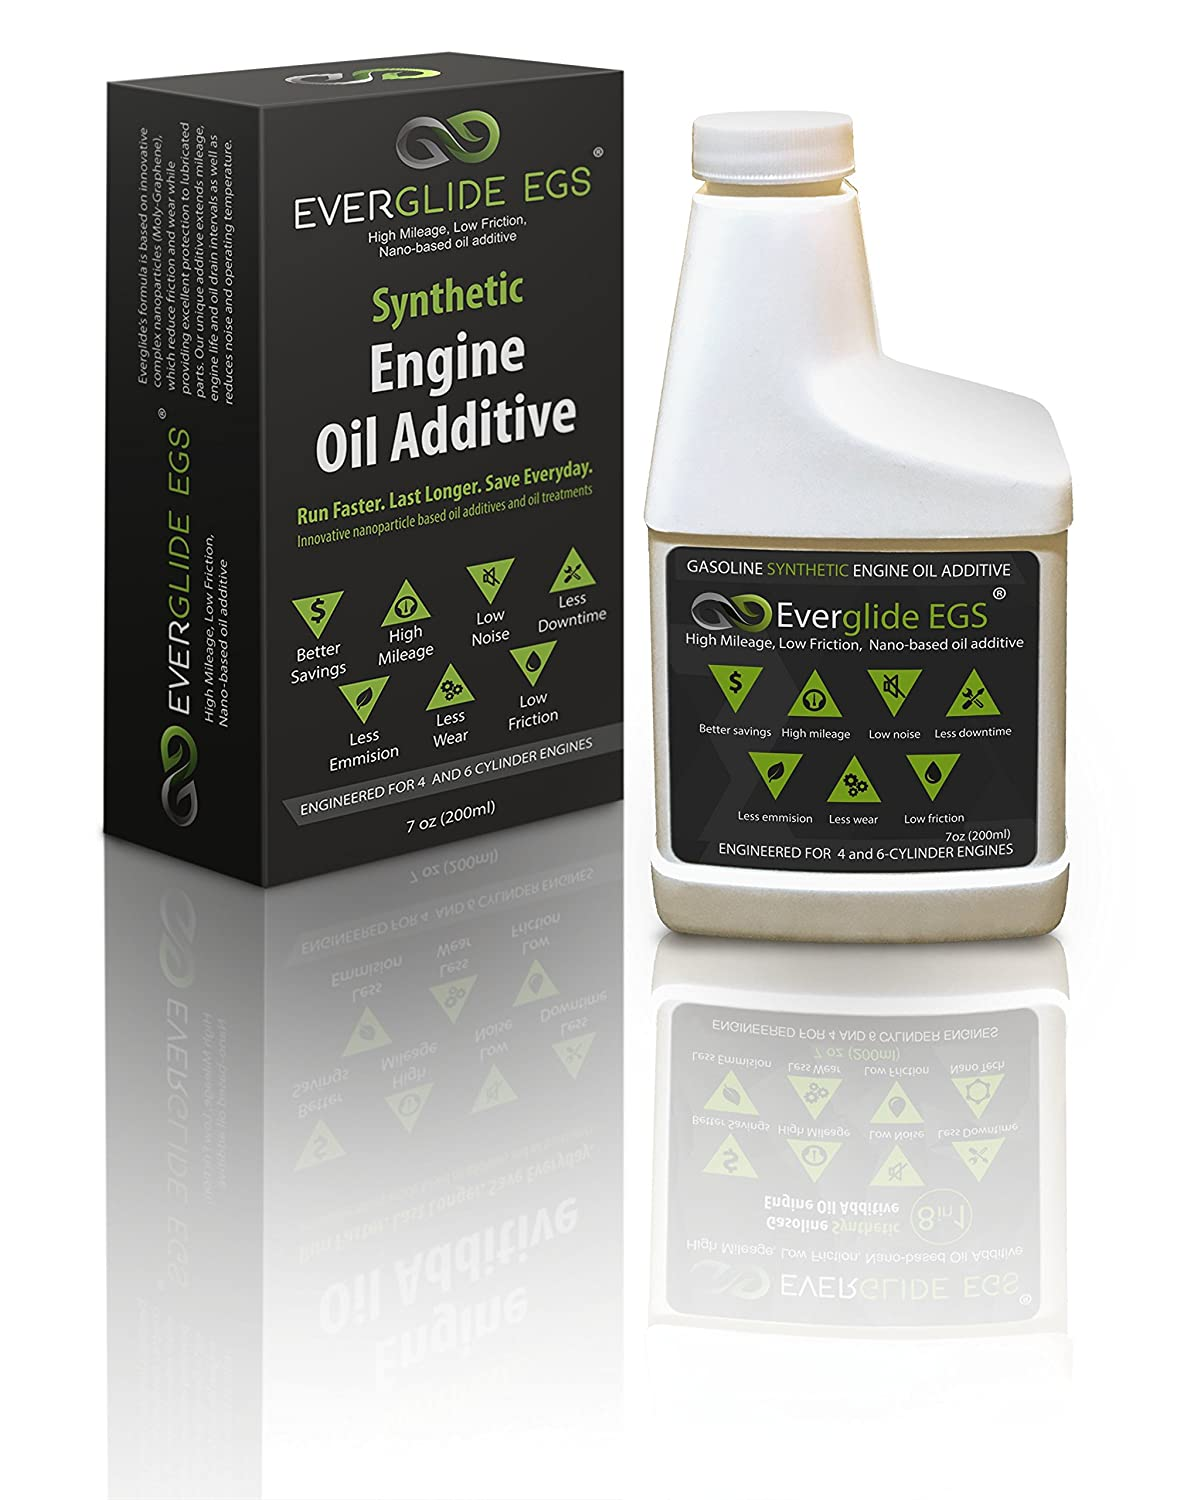 Everglide EGS Synthetic Nano-Based Engine Oil Treatment. MPG Booster. Everglide Oil